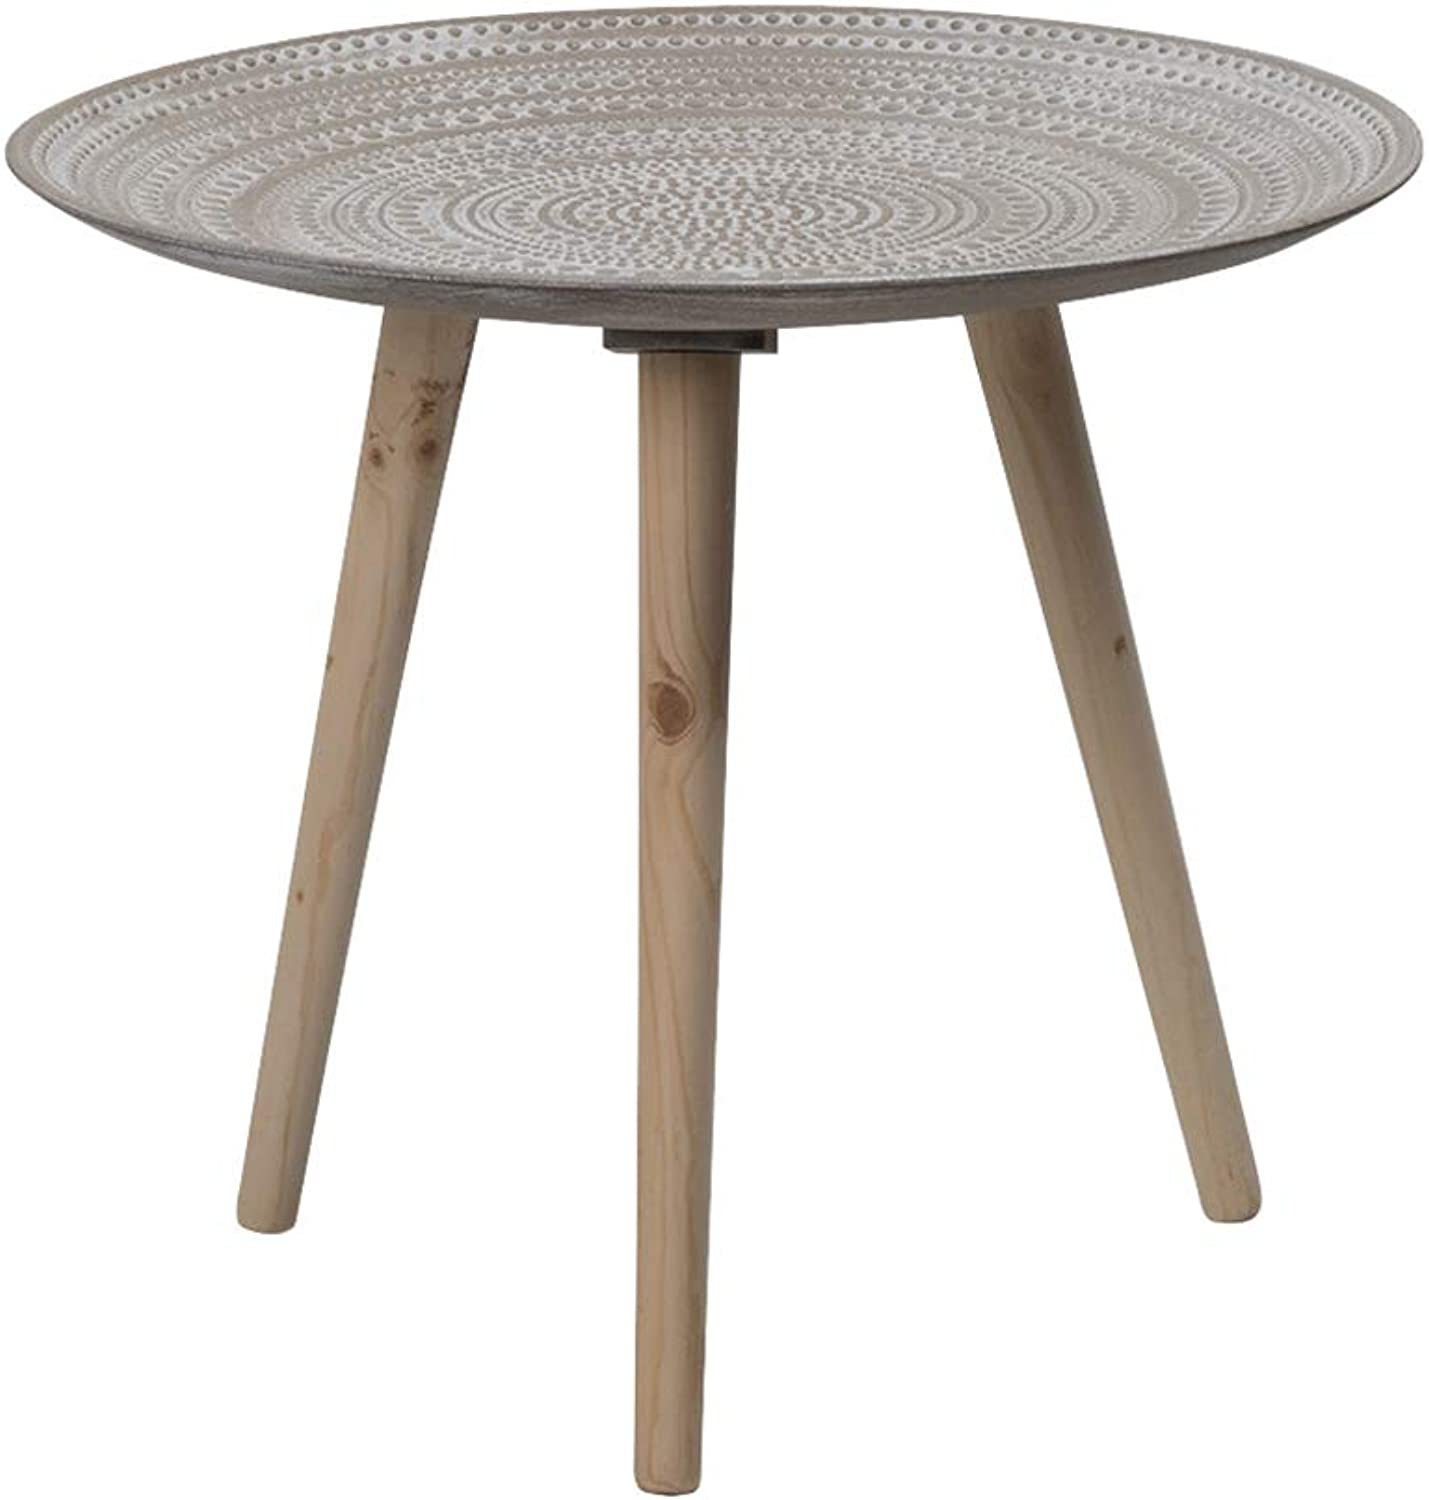 Nordic Fashion Small Coffee Table, Home Living Room Bedroom Balcony Leisure Table - Creative Simple Small Round Table - Home Decoration Storage Stand